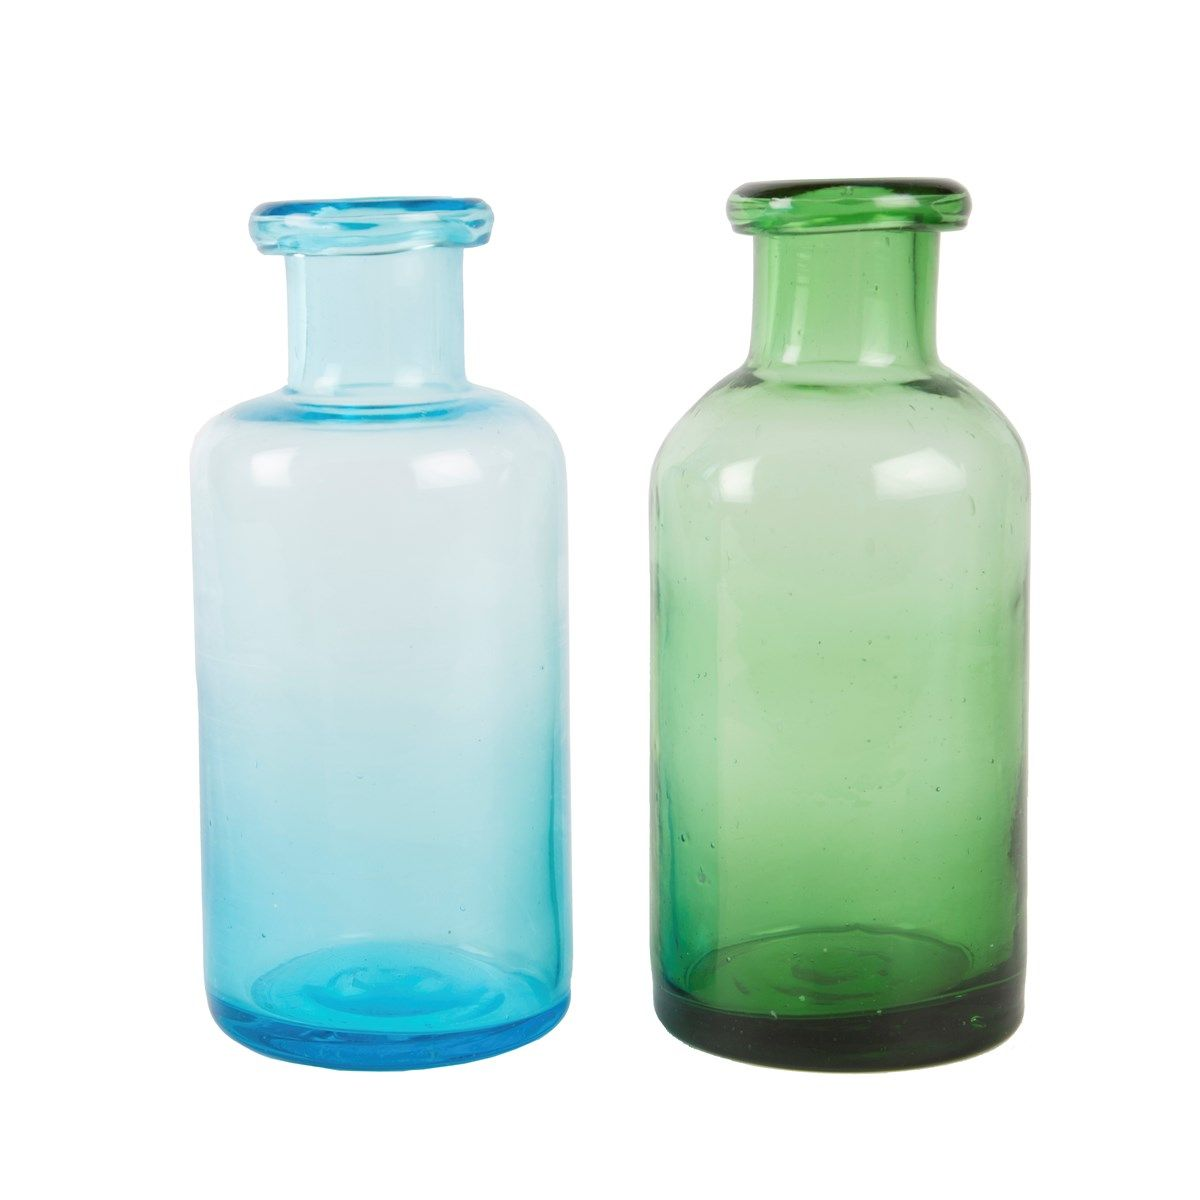 Blue green glass bottle vase options available i am indeed a blue green glass bottle vase options available reviewsmspy